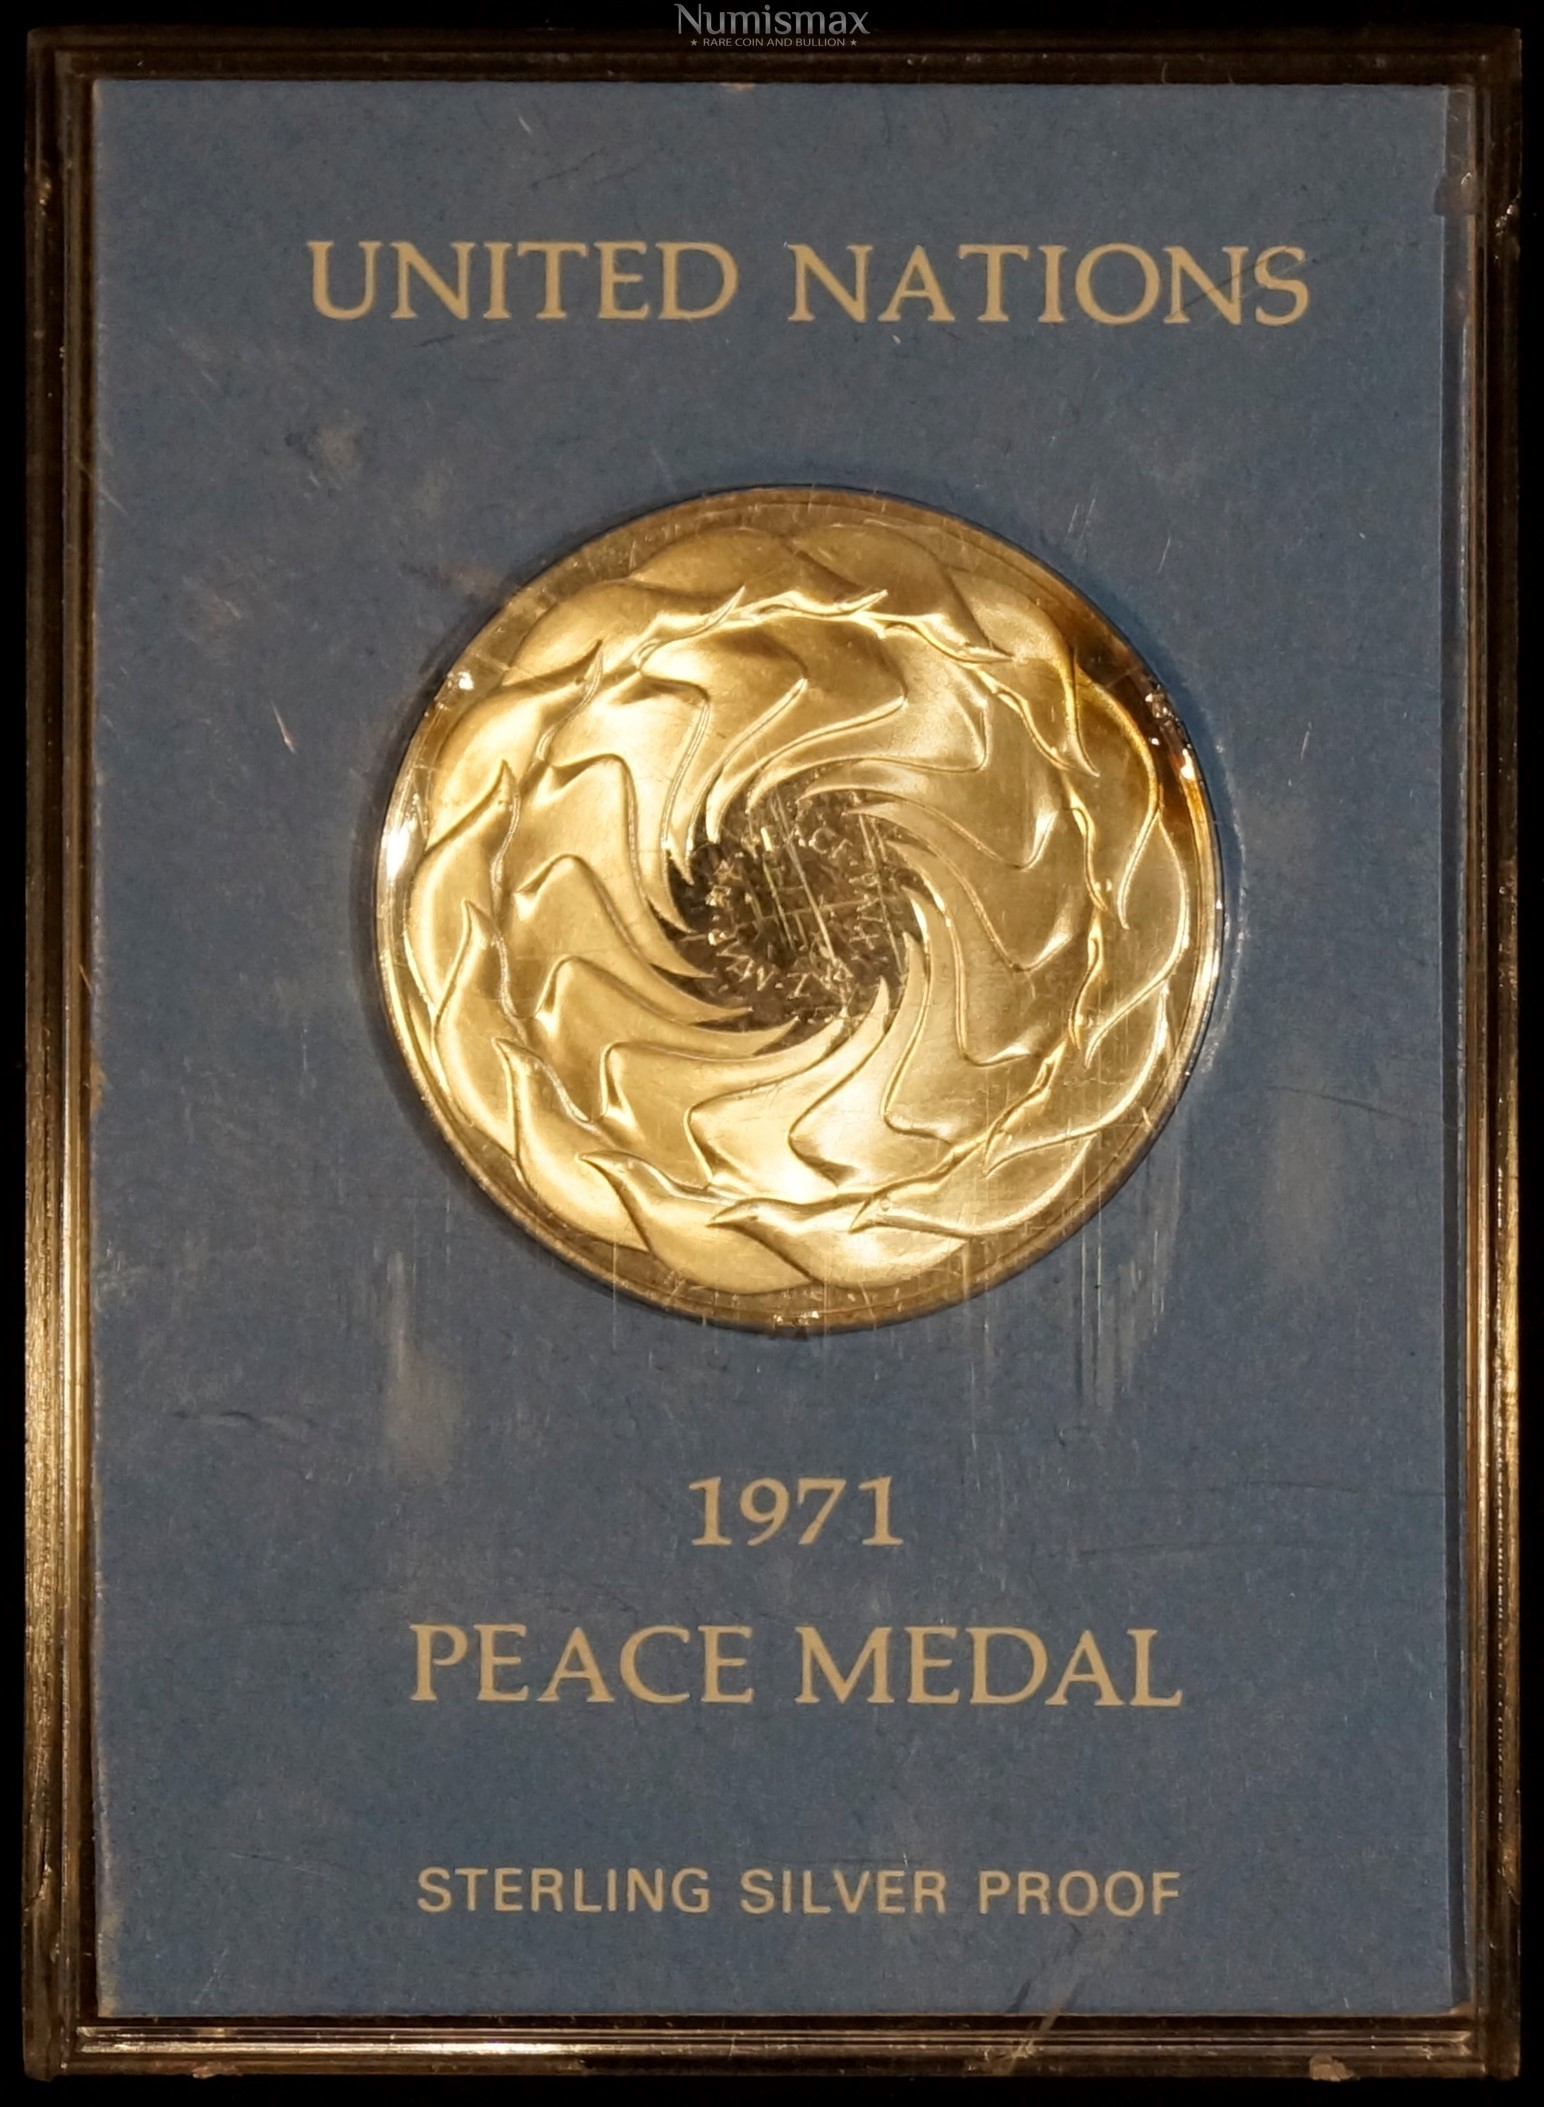 1971 United Nations Sterling Silver Proof Peace Medal